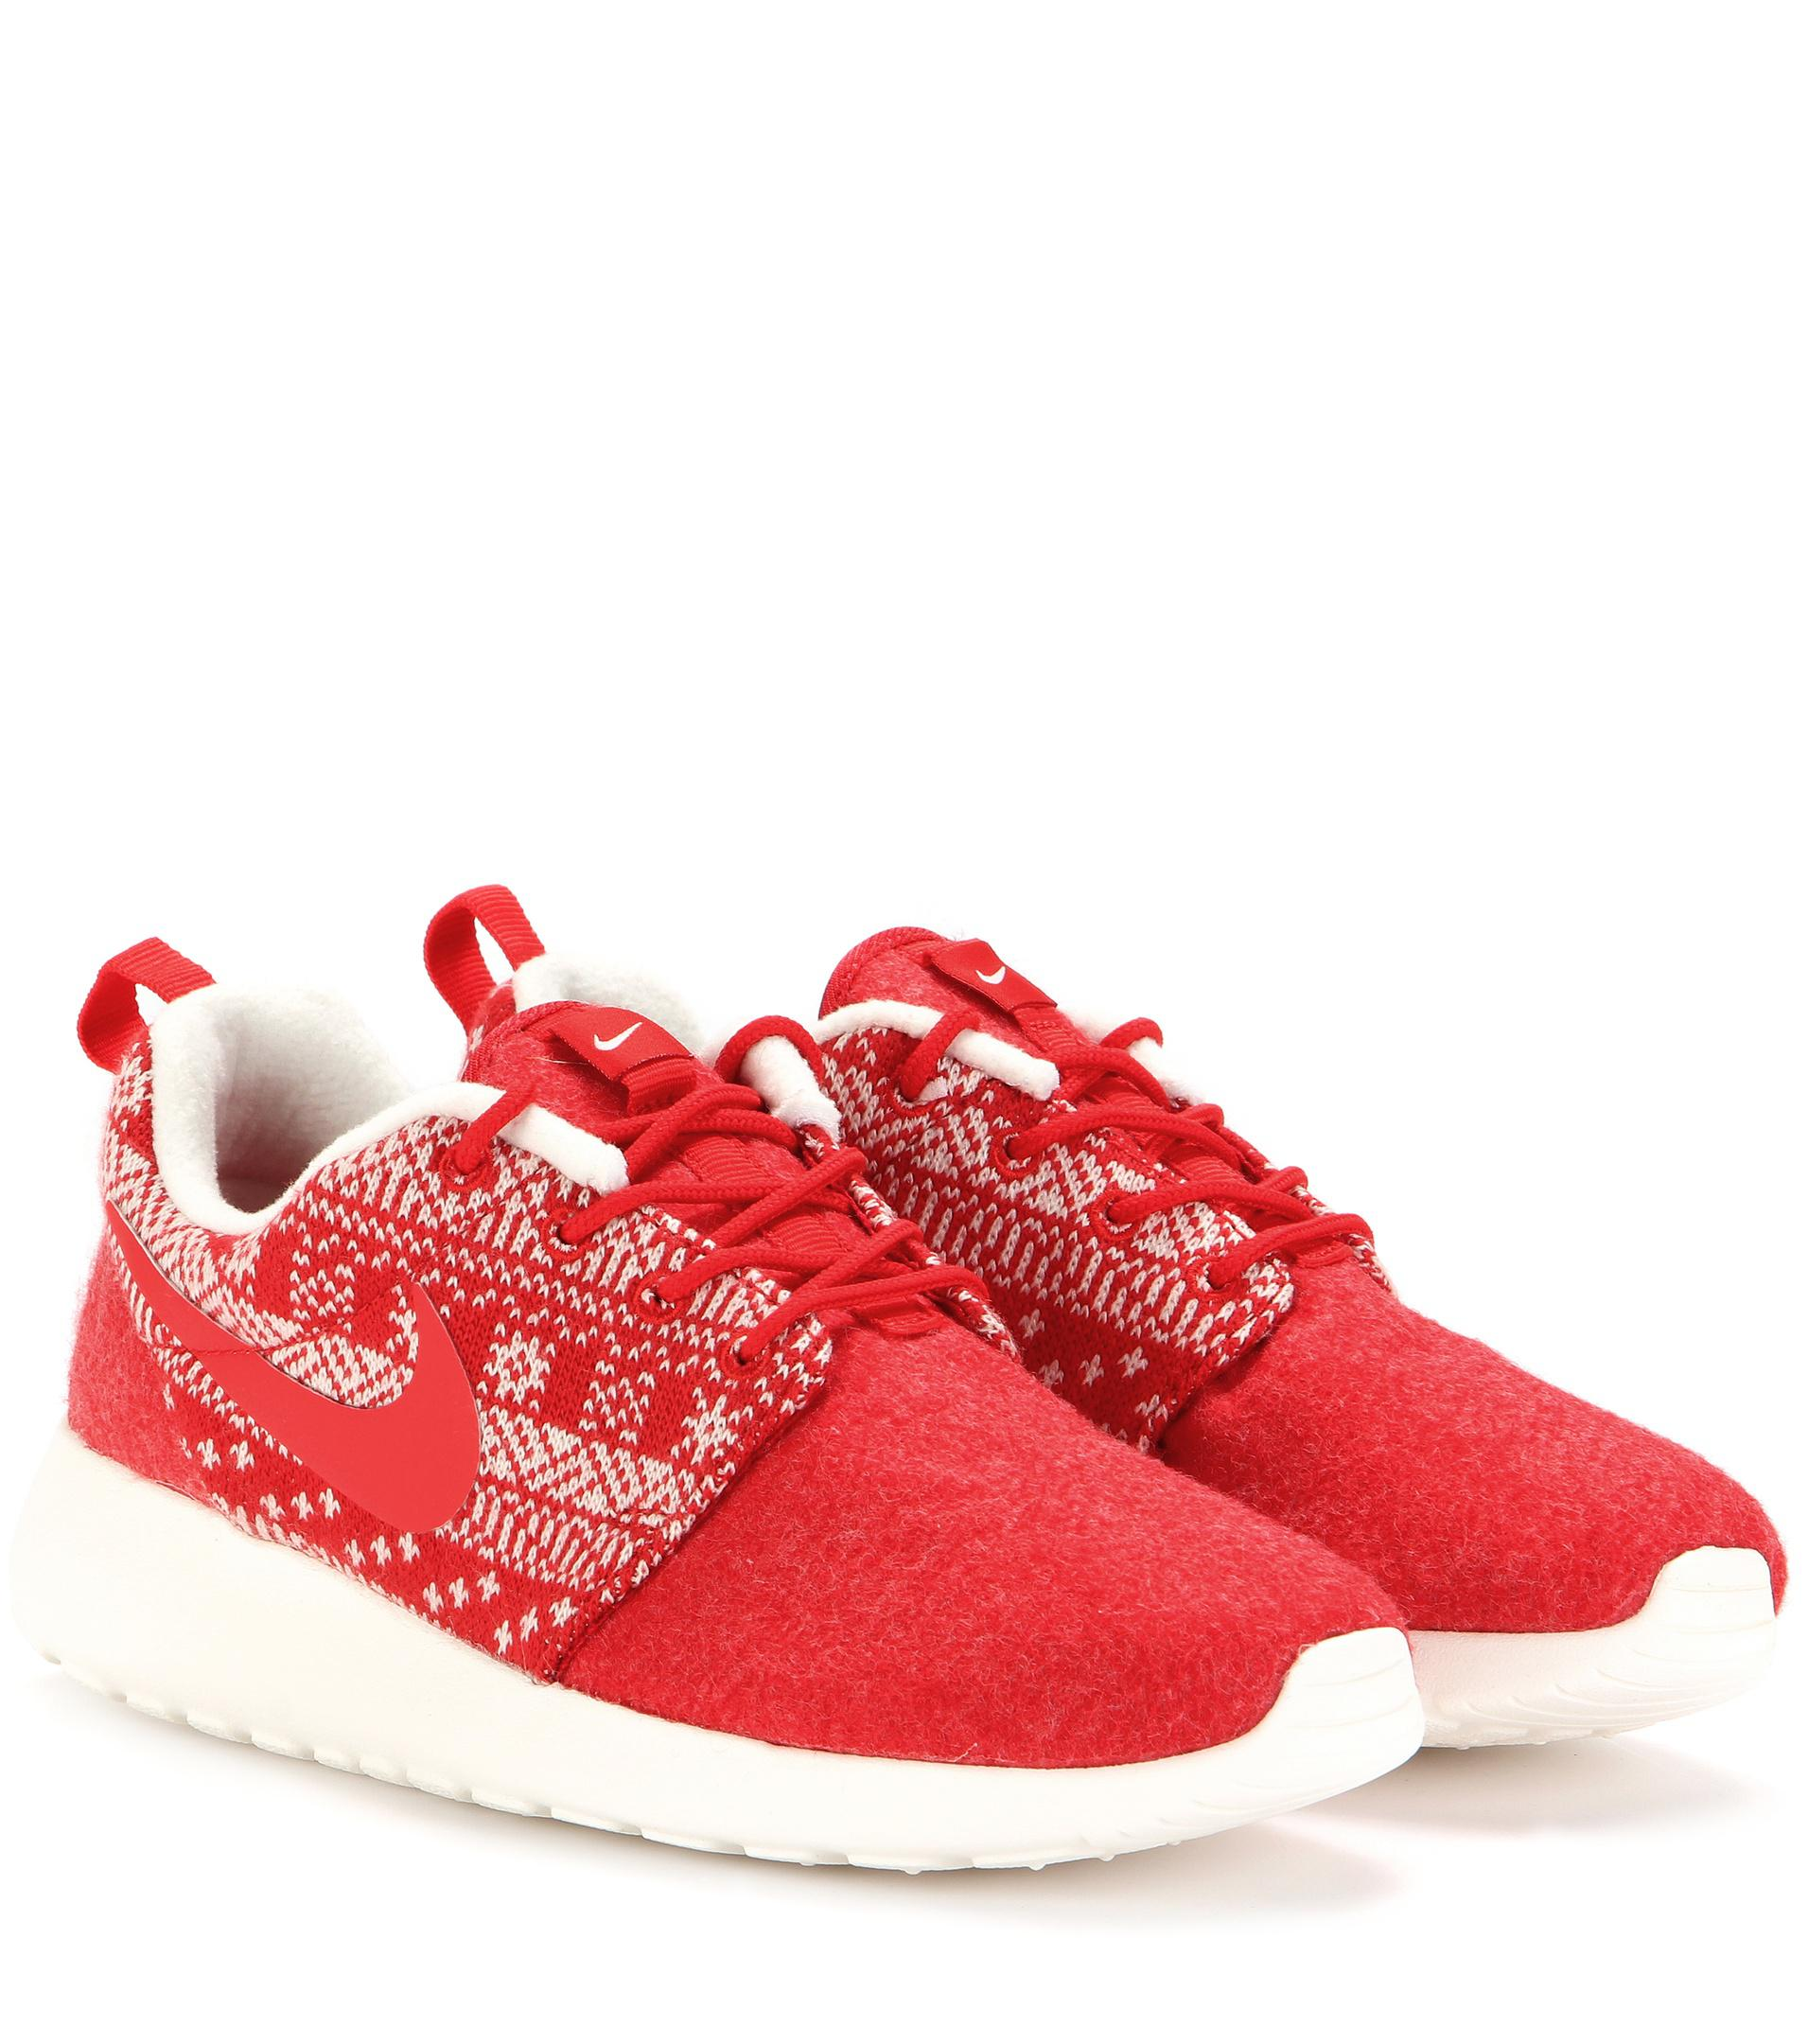 newest 623f8 956e0 Lyst - Nike Roshe One Winter Sneakers in Red